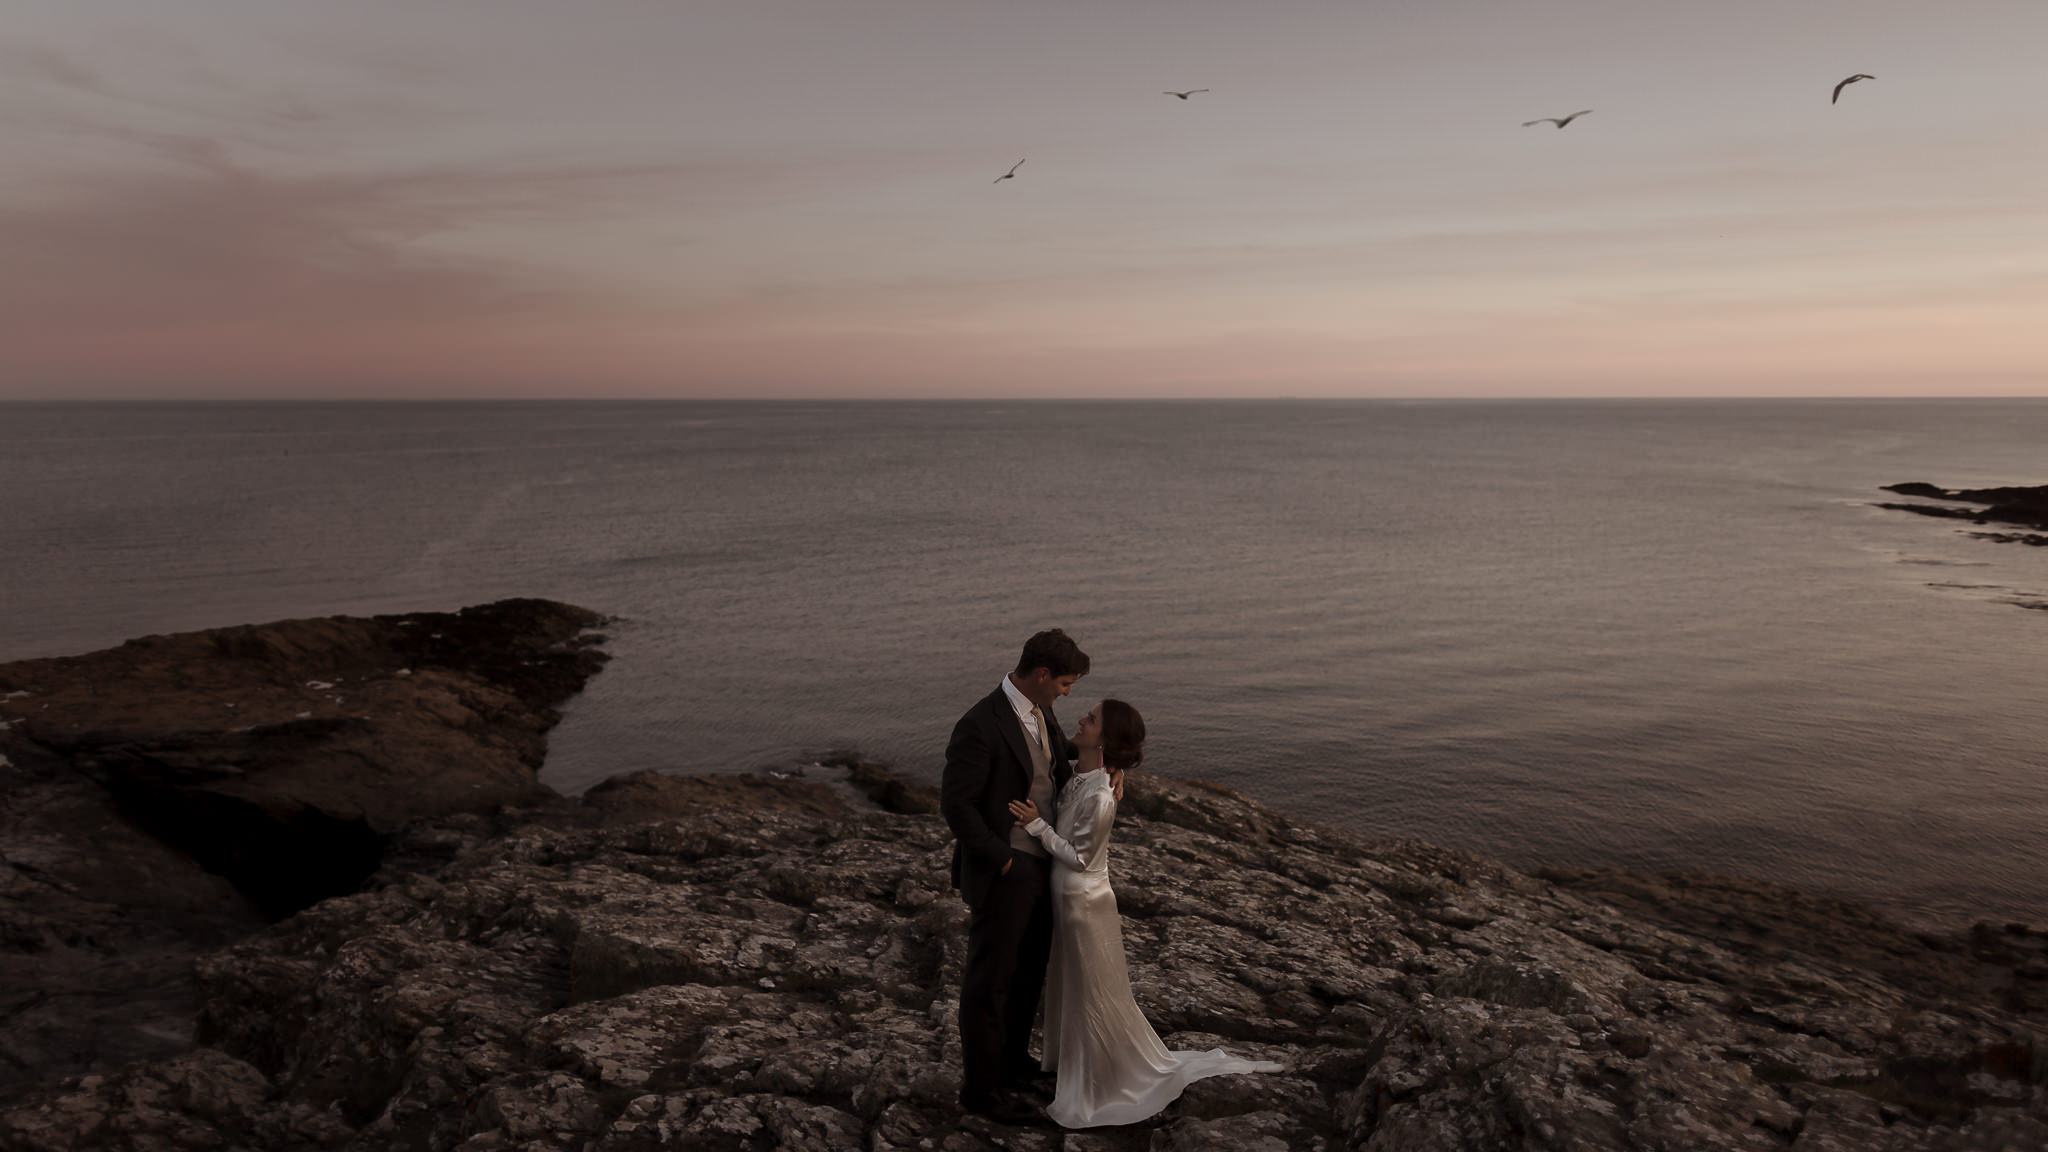 A sunset couple portrait in Cornwall